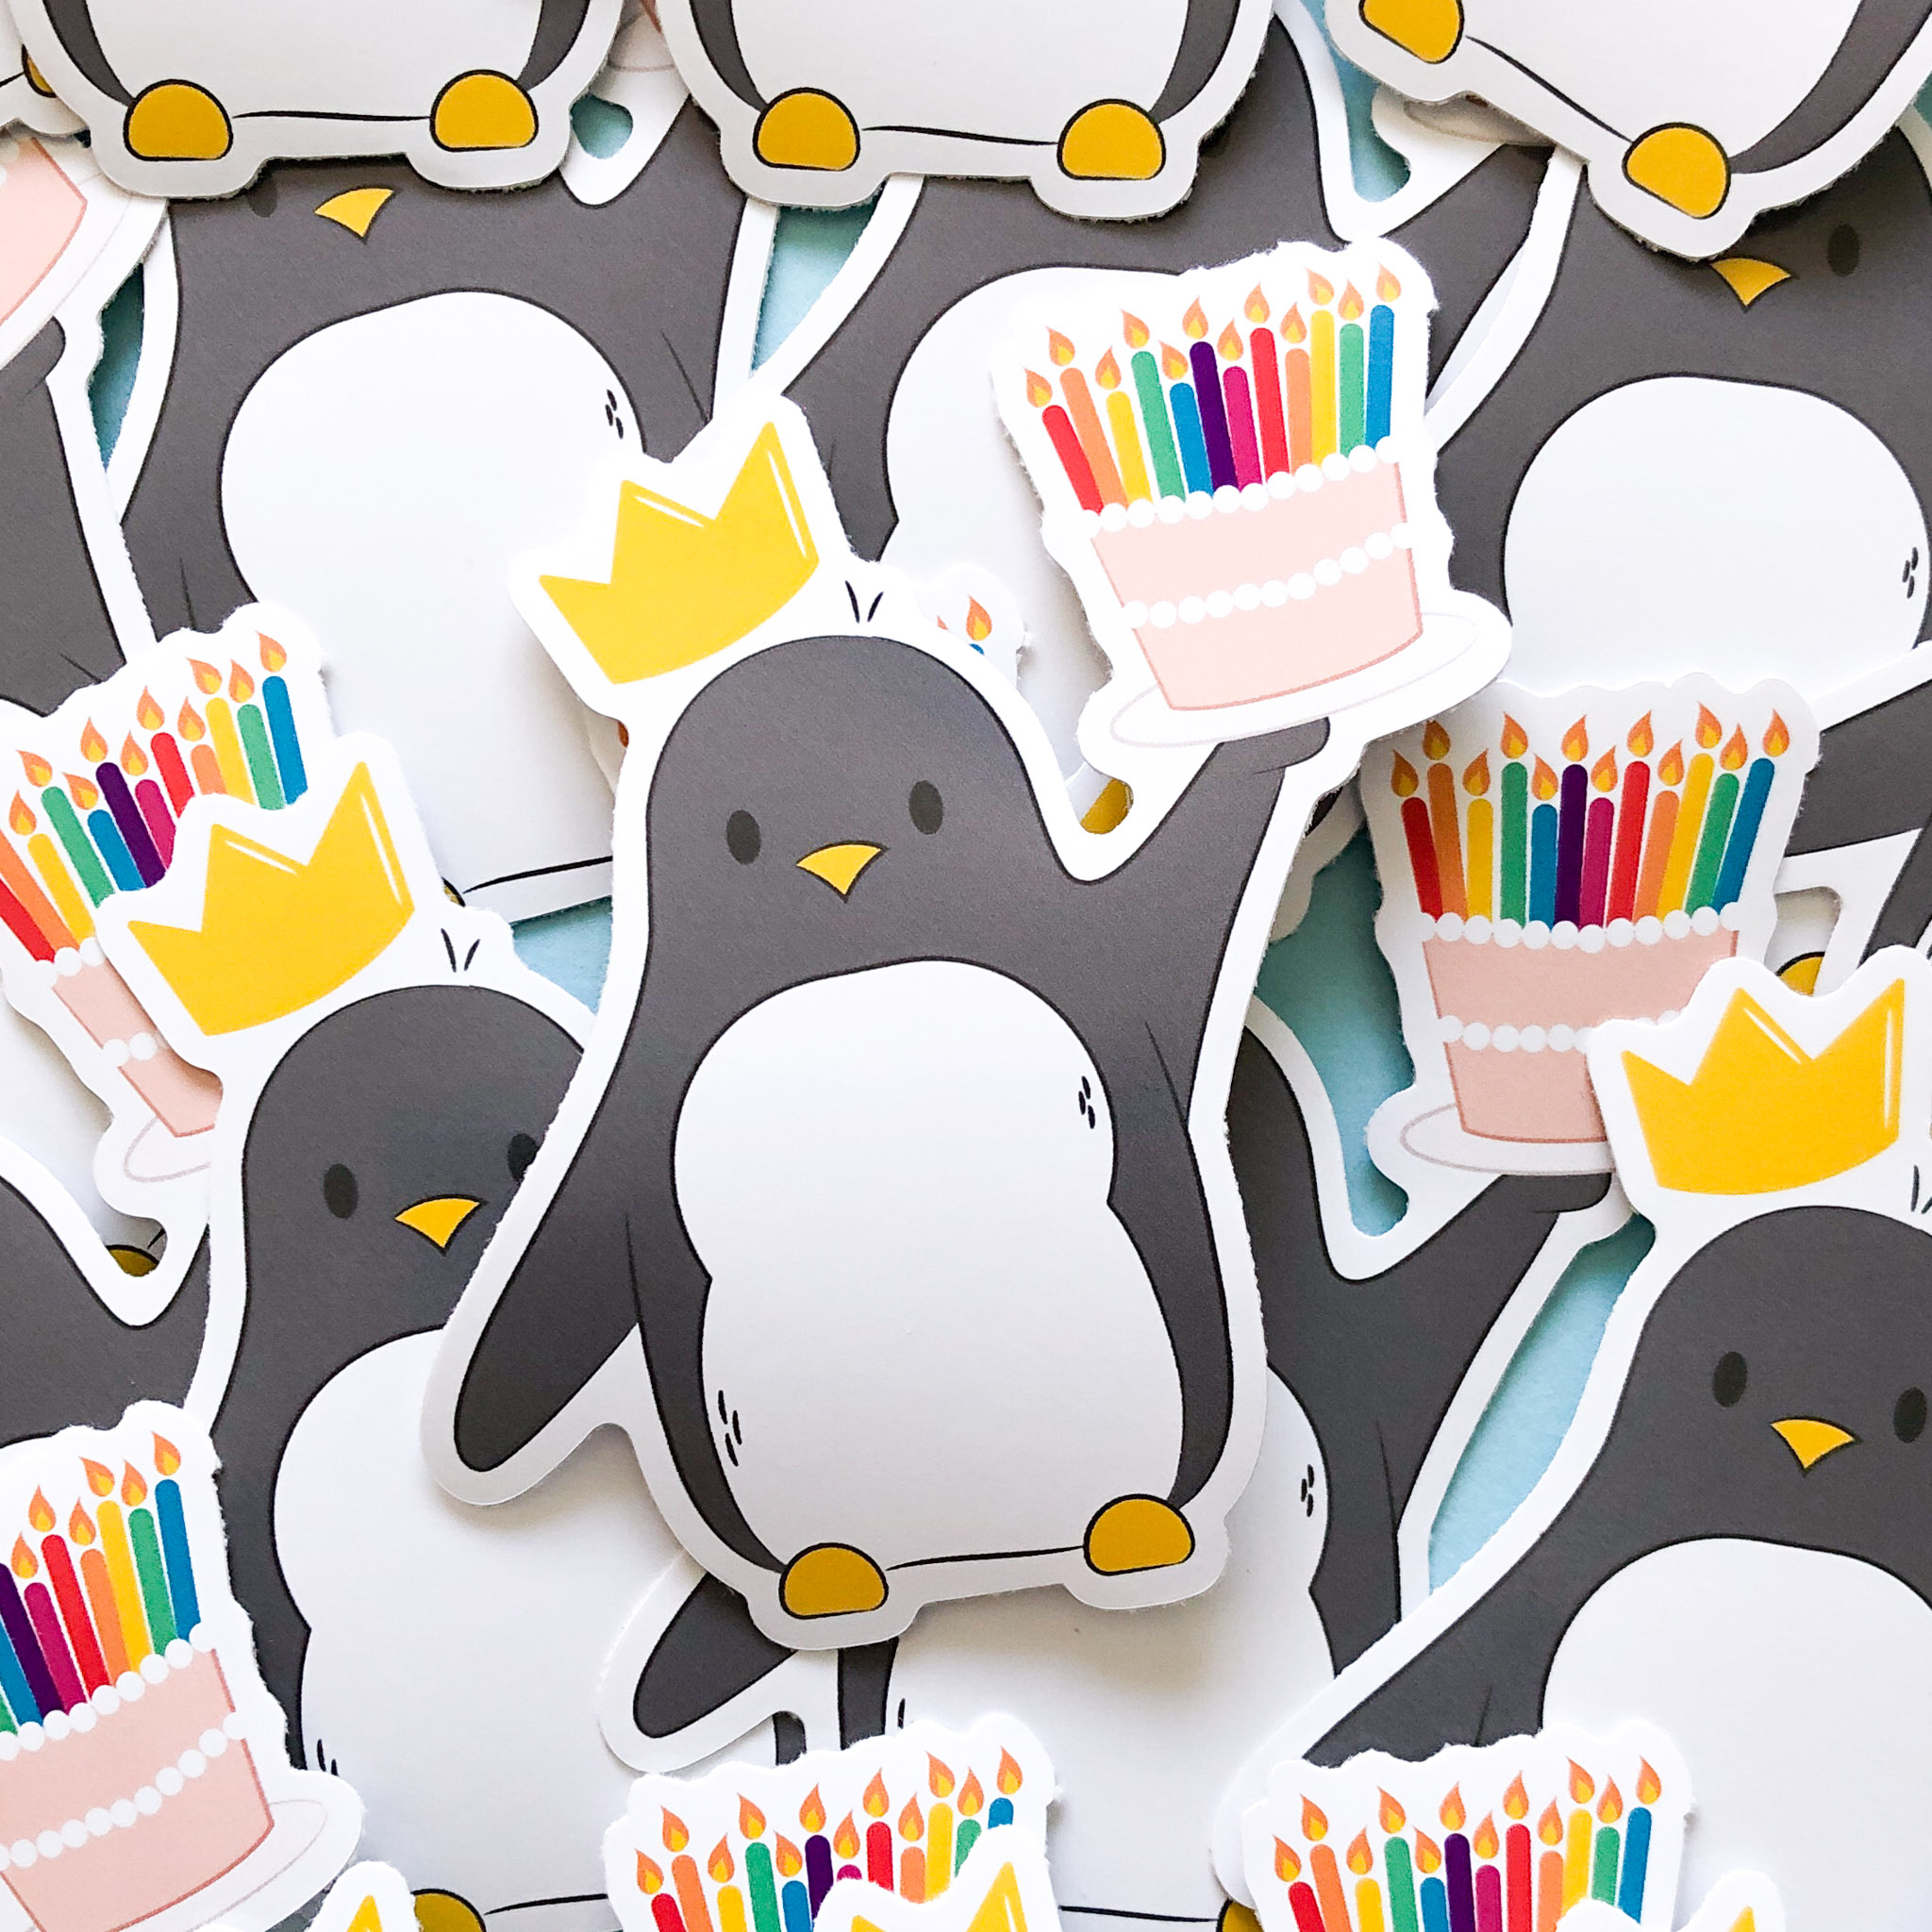 Multiple stickers all layered on top of each other, this sticker design of penguin holding a birthday cake with lit, colourful candles on top and he's wearing a yellow birthday crown.